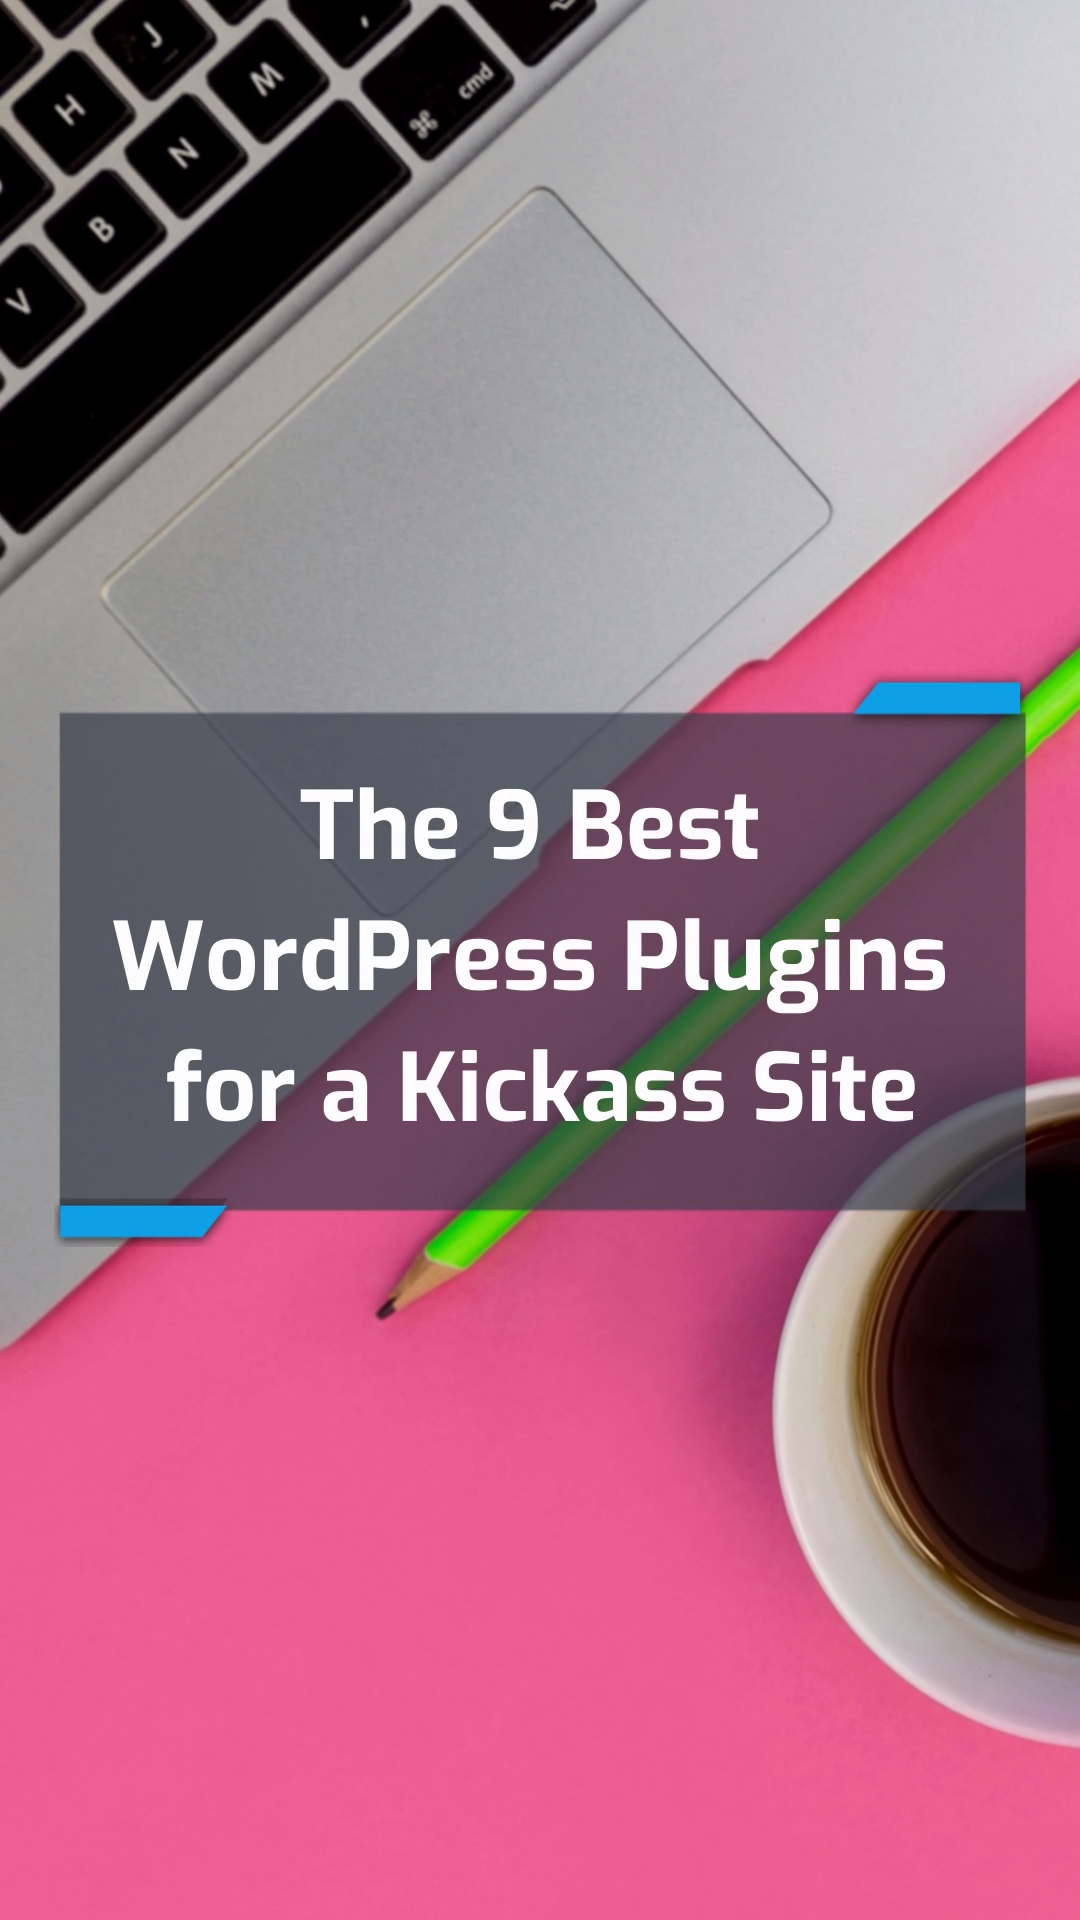 Plugins are a great way to make your blogging life easier, but you want to be very particular about what plugins you use and how many, too many could be weighing down your site, check out this post for the 9 best wordpress plugins for a kickass site #blogging #bloggingtips #wordpress #tech #plugins #blogger